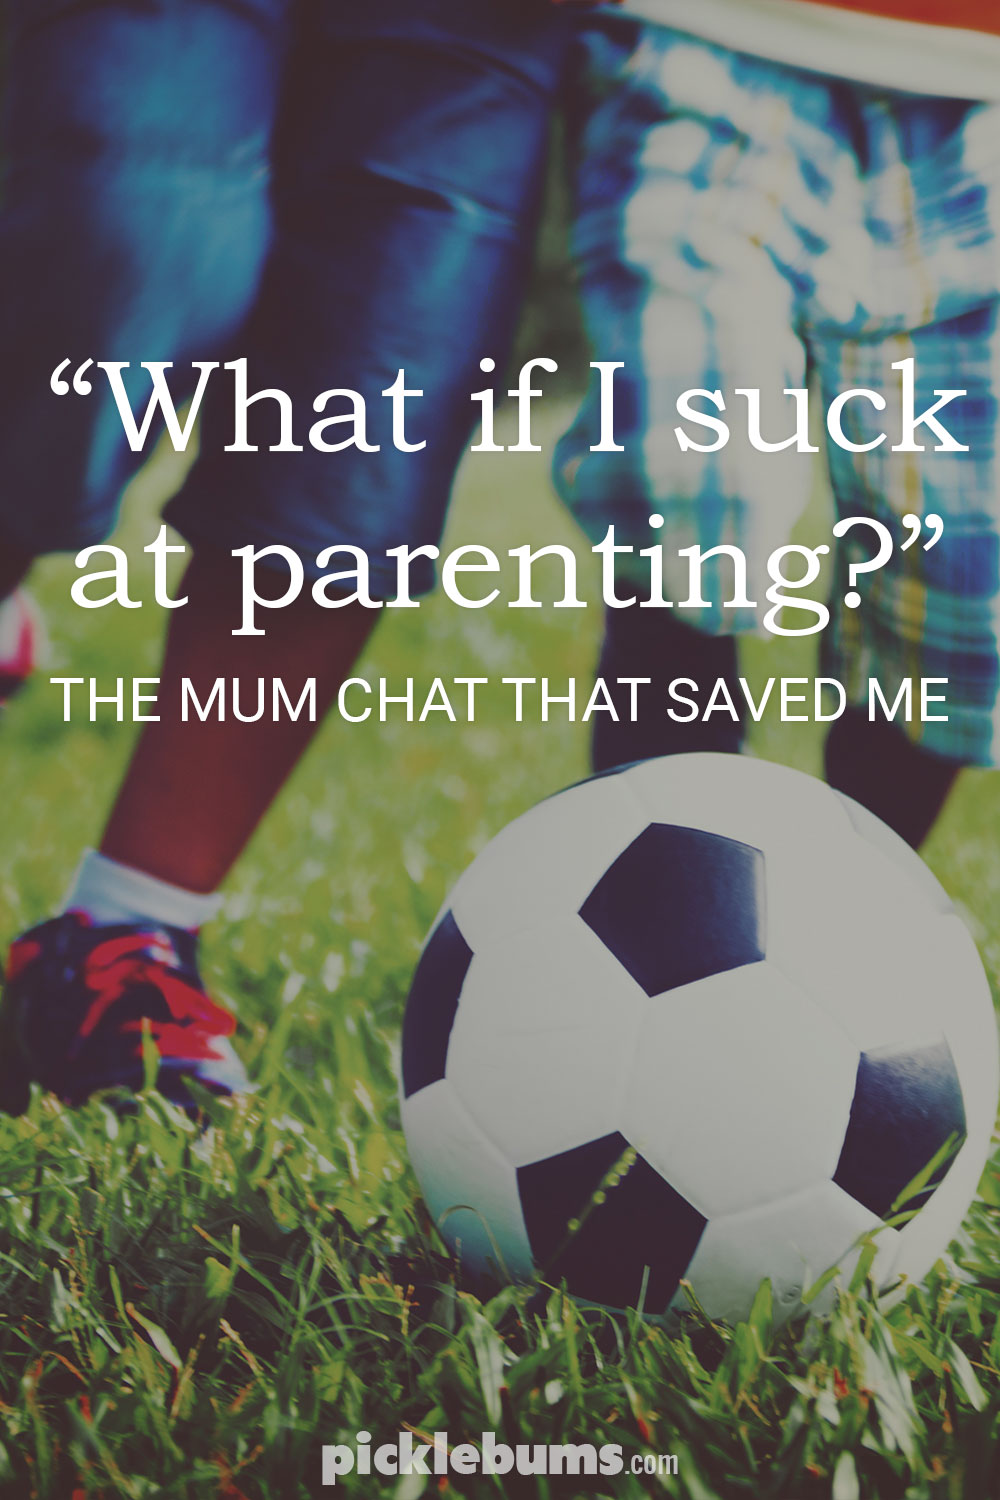 What if I suck at parenting? The 'Mum chat' that saved me.